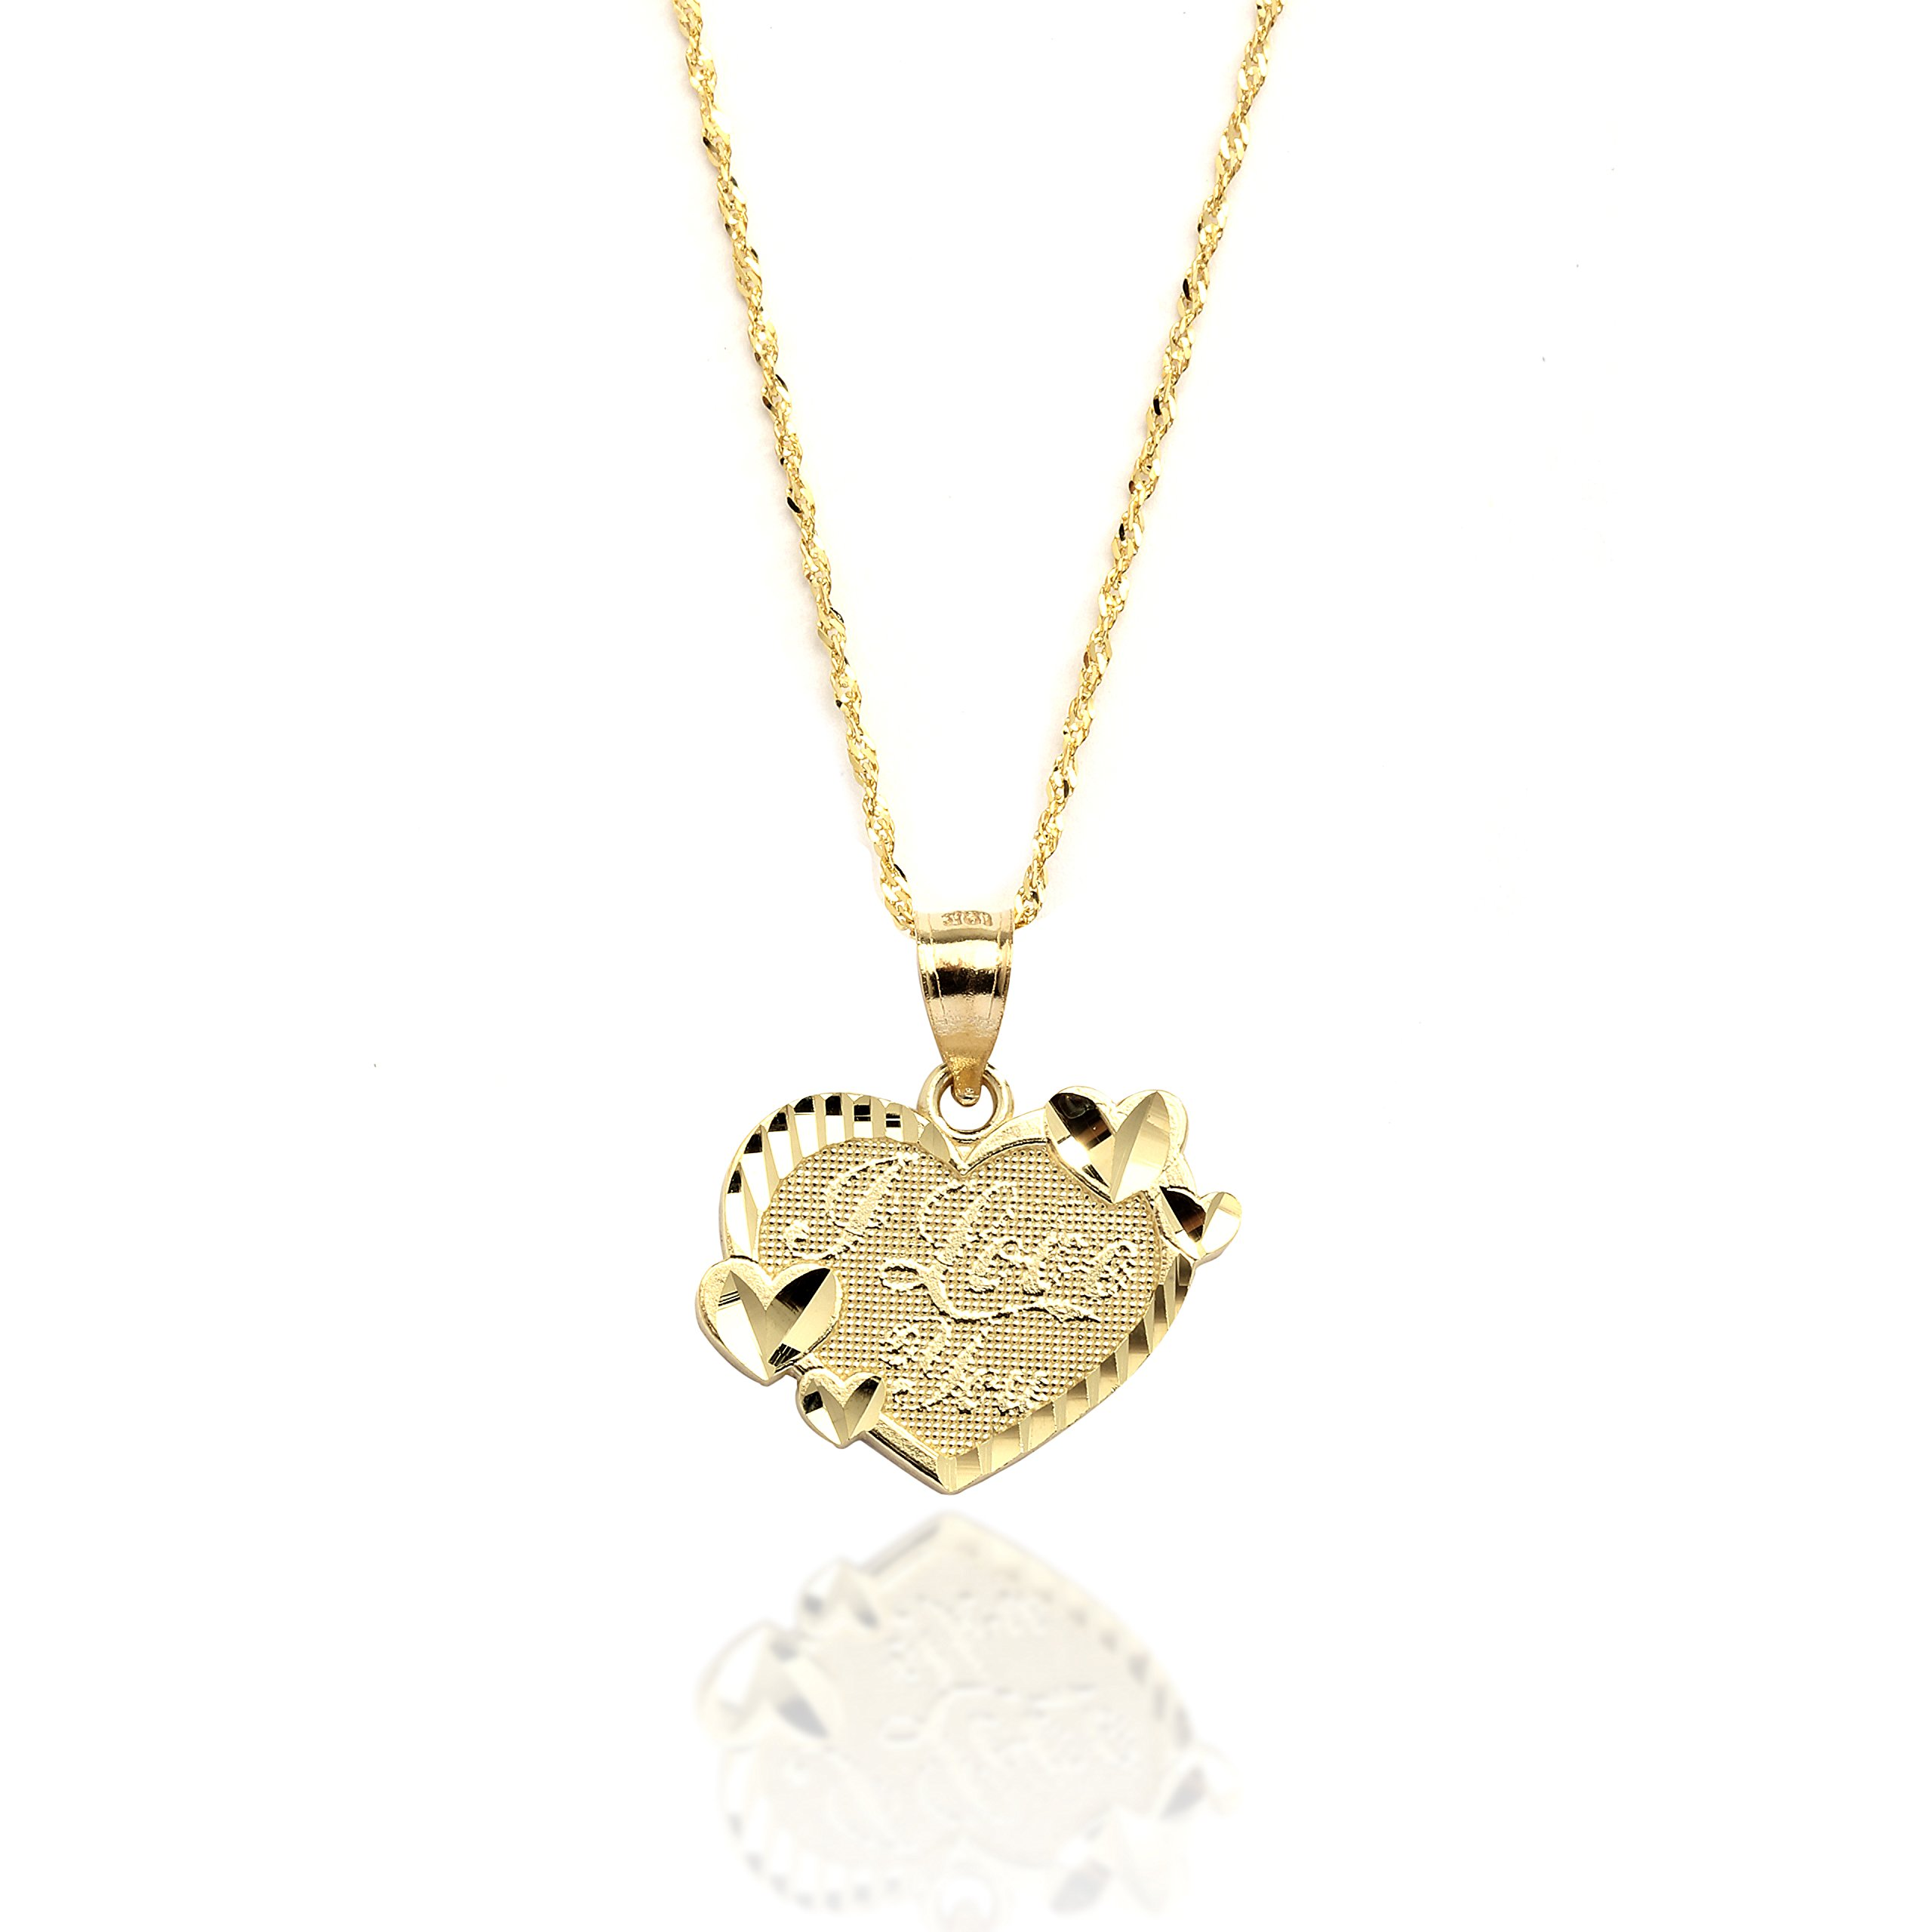 16'' 10k Yellow Gold I Love You Heart Charm Necklace with Singapore Chain for Women and Girls